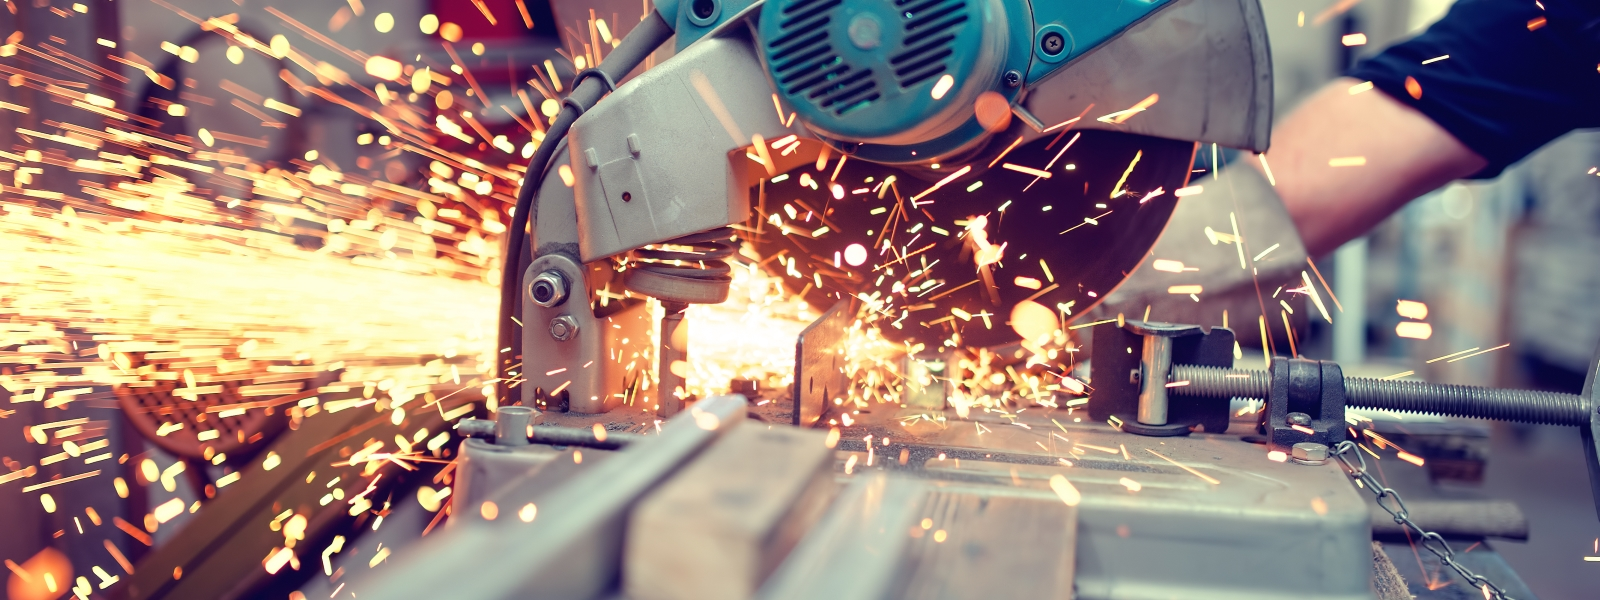 Steel Fabrication Services In Witney